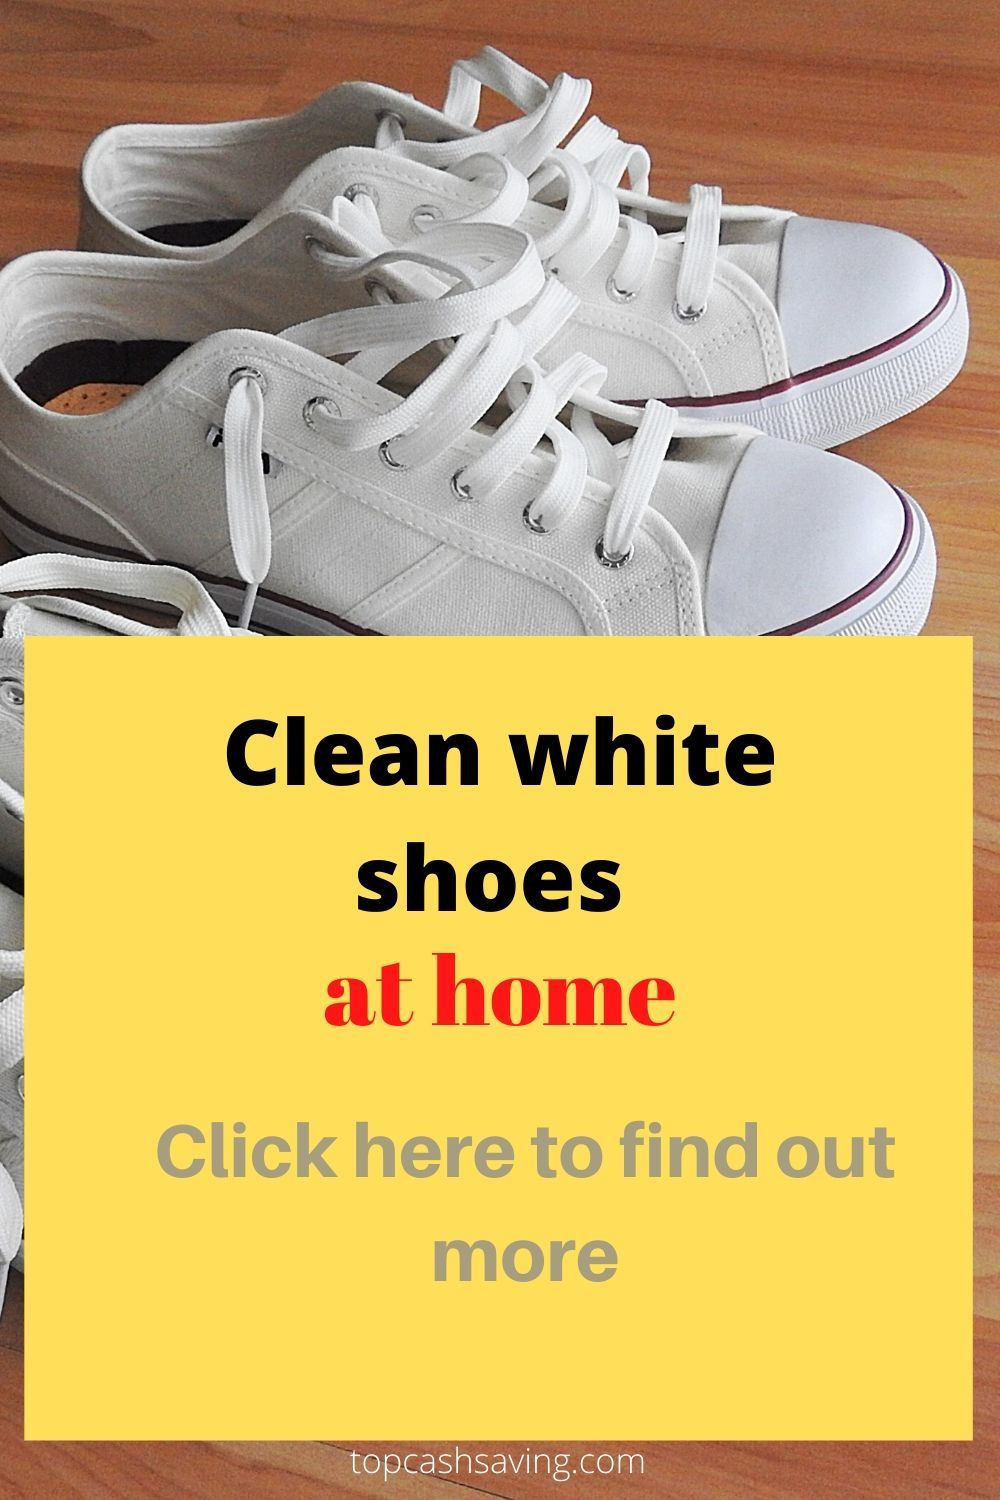 Can You Wash Suede Shoes With Soap And Water How To Clean White Shoes At Home In 2020 How To Clean White Shoes Cleaning White Shoes